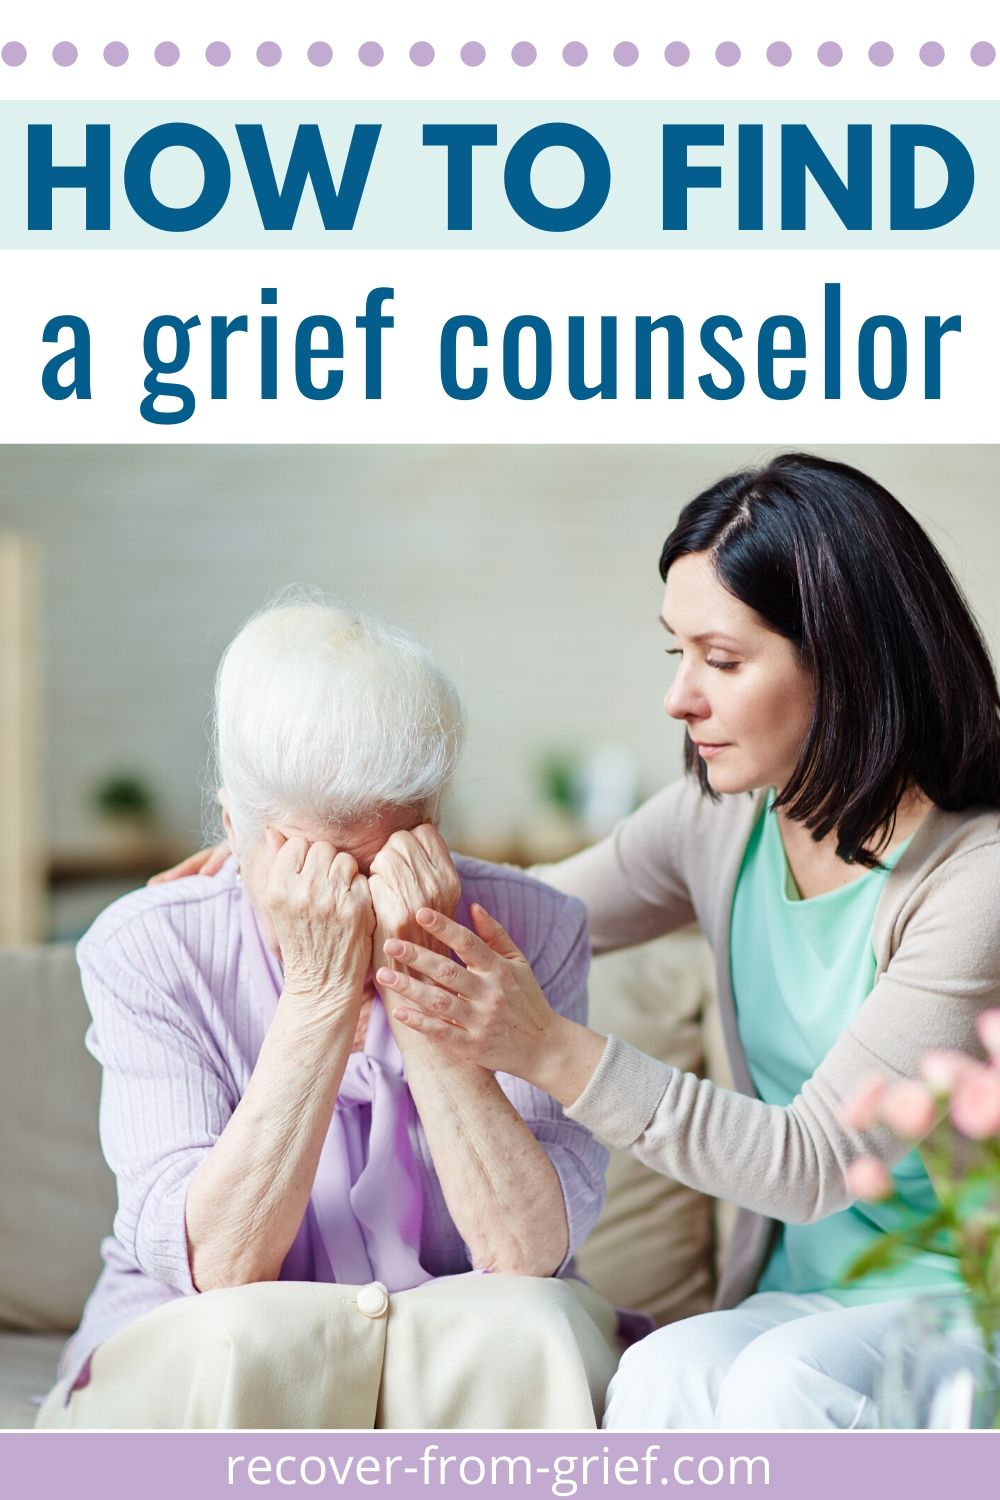 Wonder how to find a grief counselor? Here are 4 ways to find a good one. #griefcounselor #grief #loss #sadness